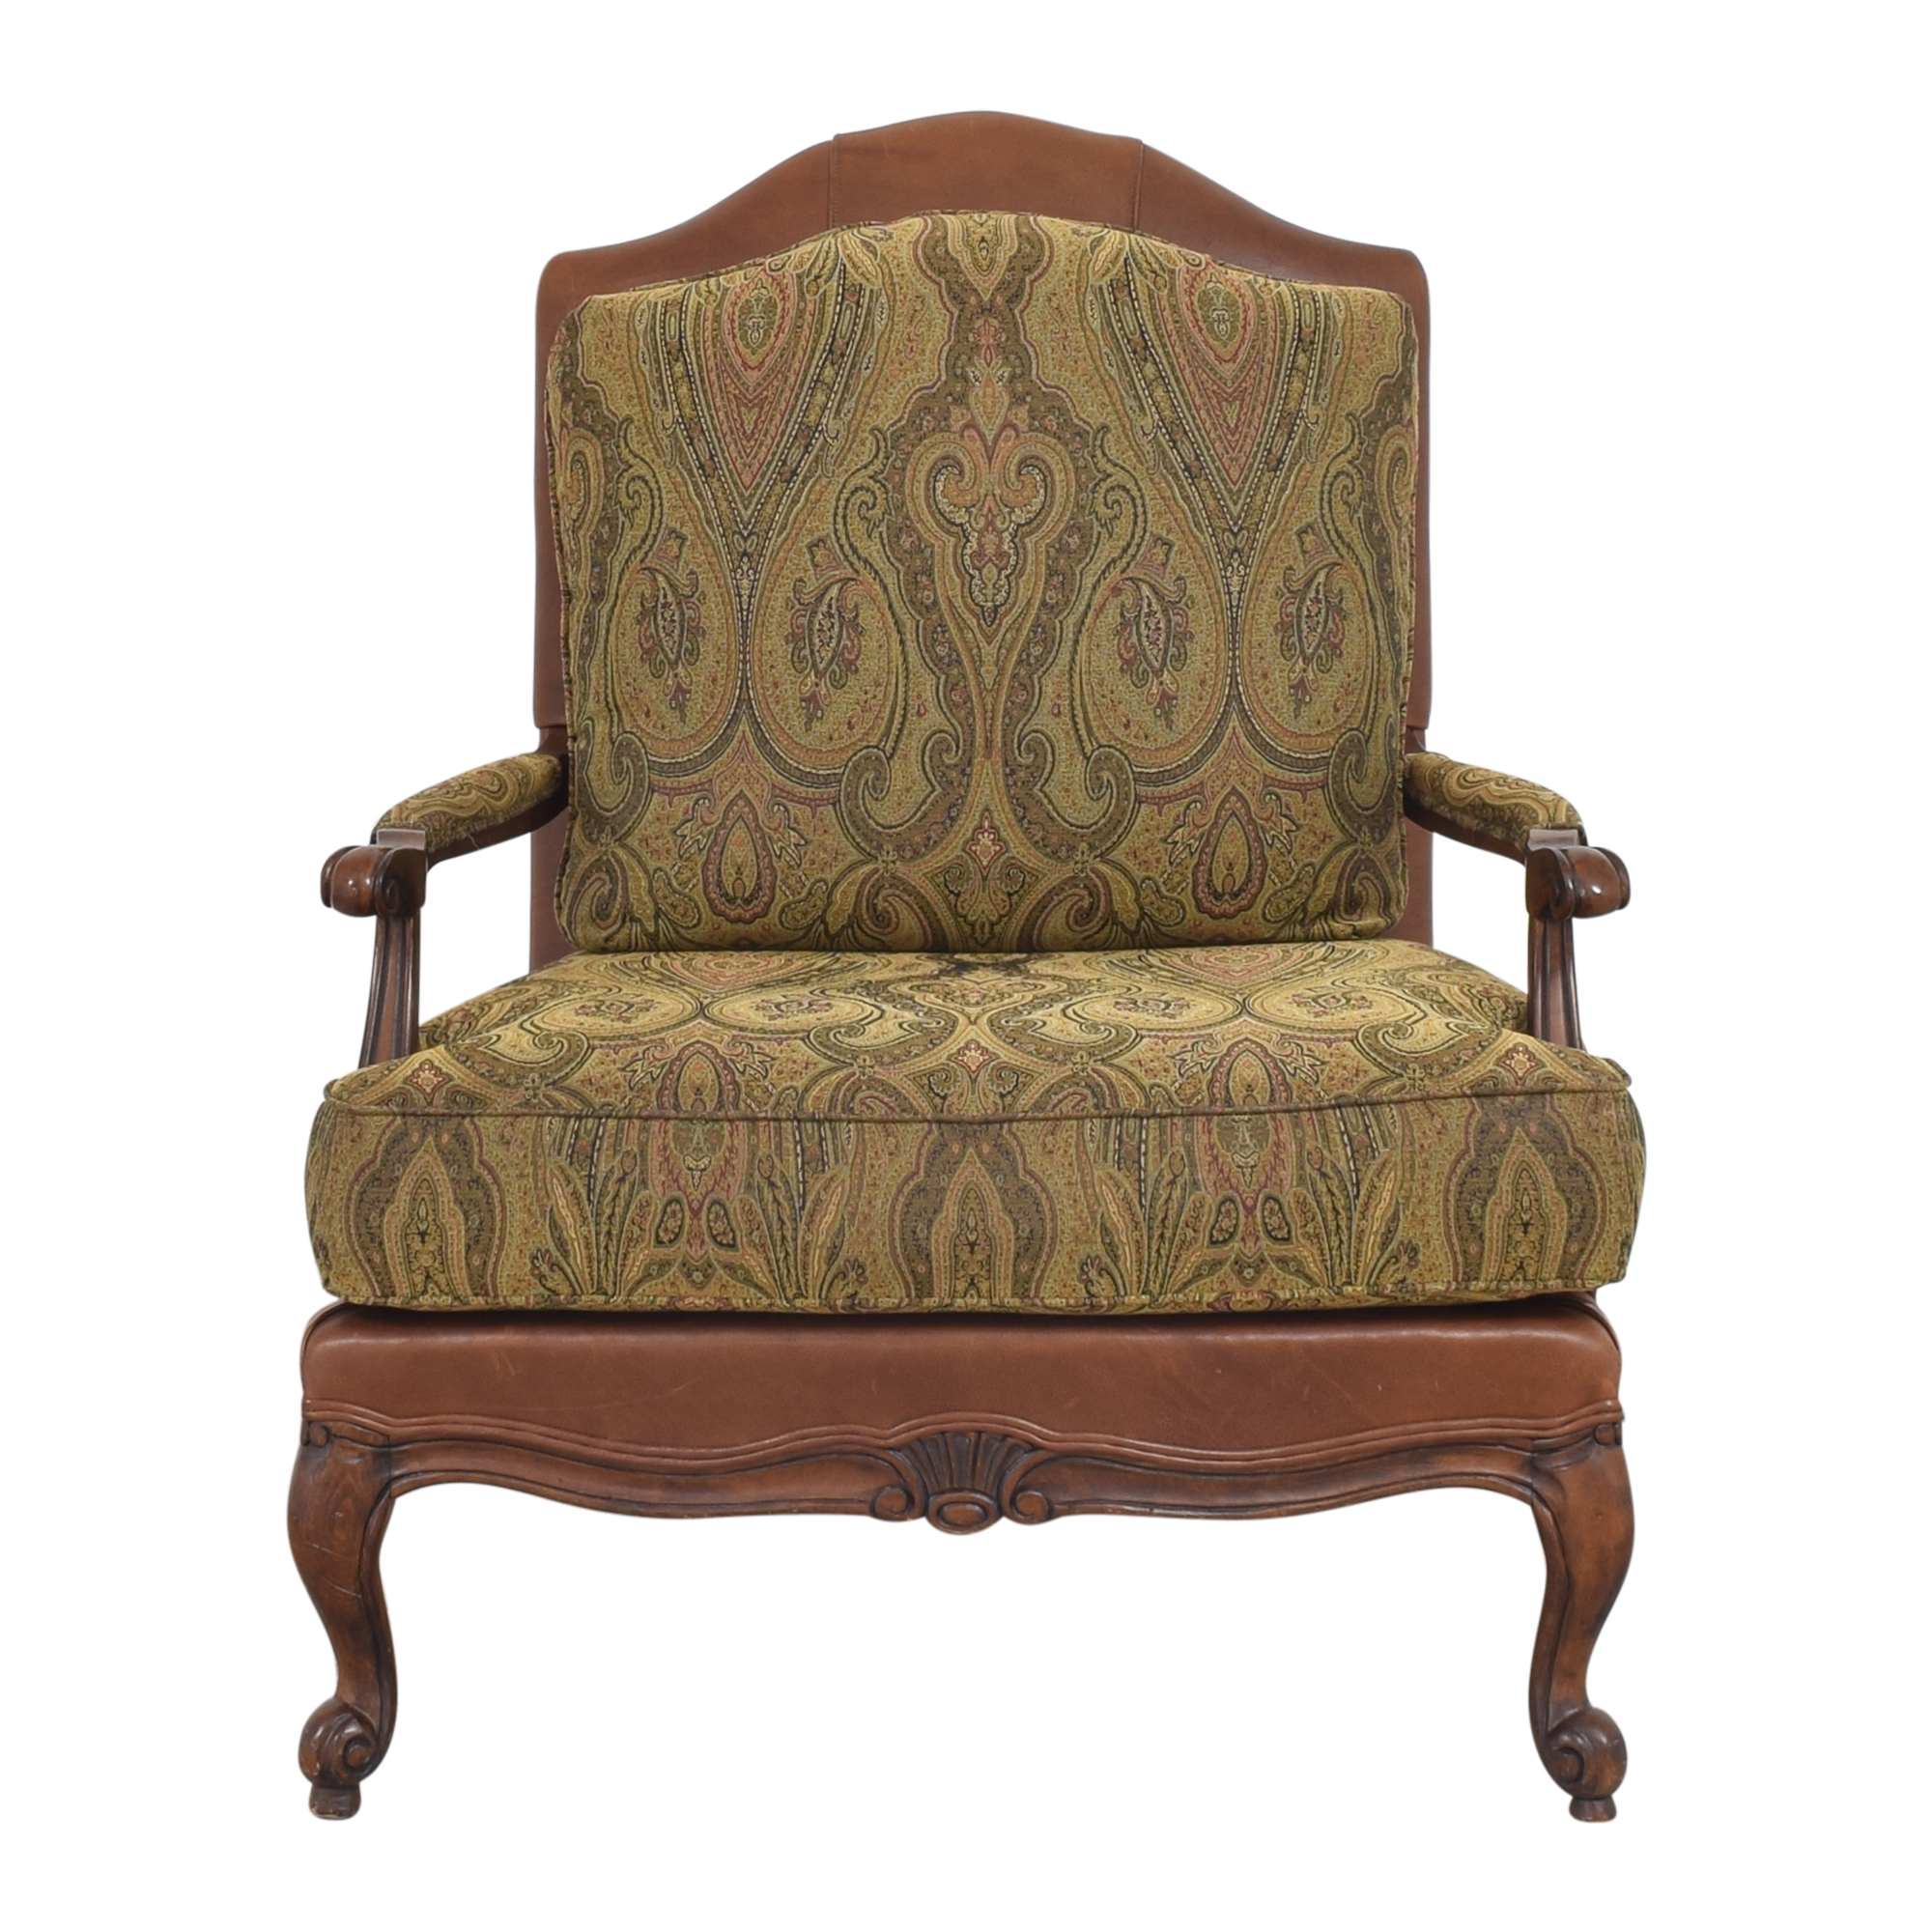 buy Ethan Allen Ethan Allen Harris Chair online